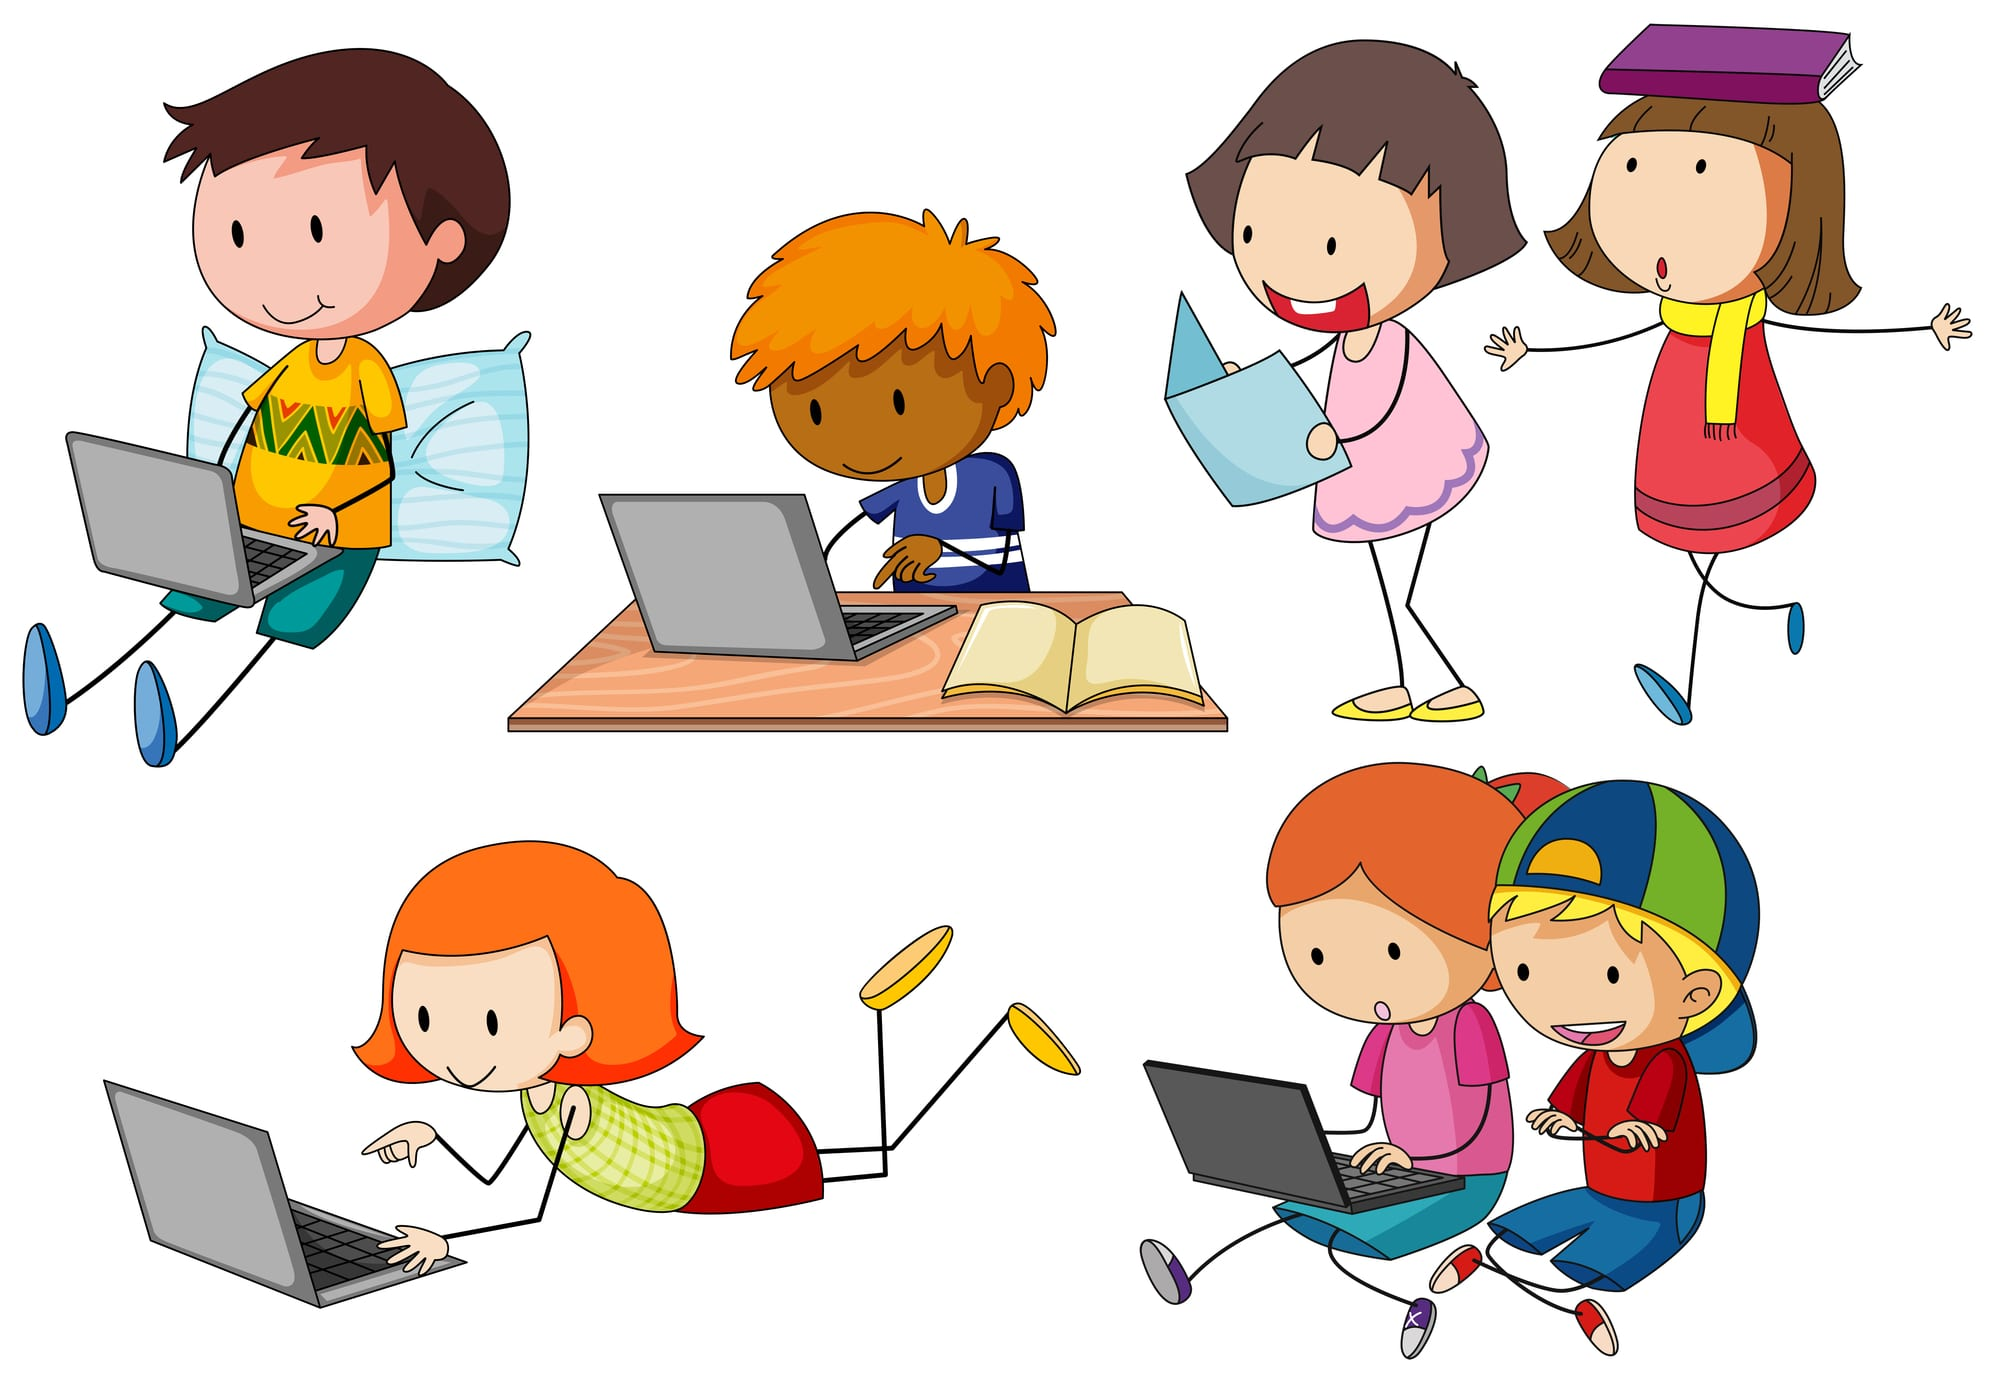 Kids with tablets and laptops